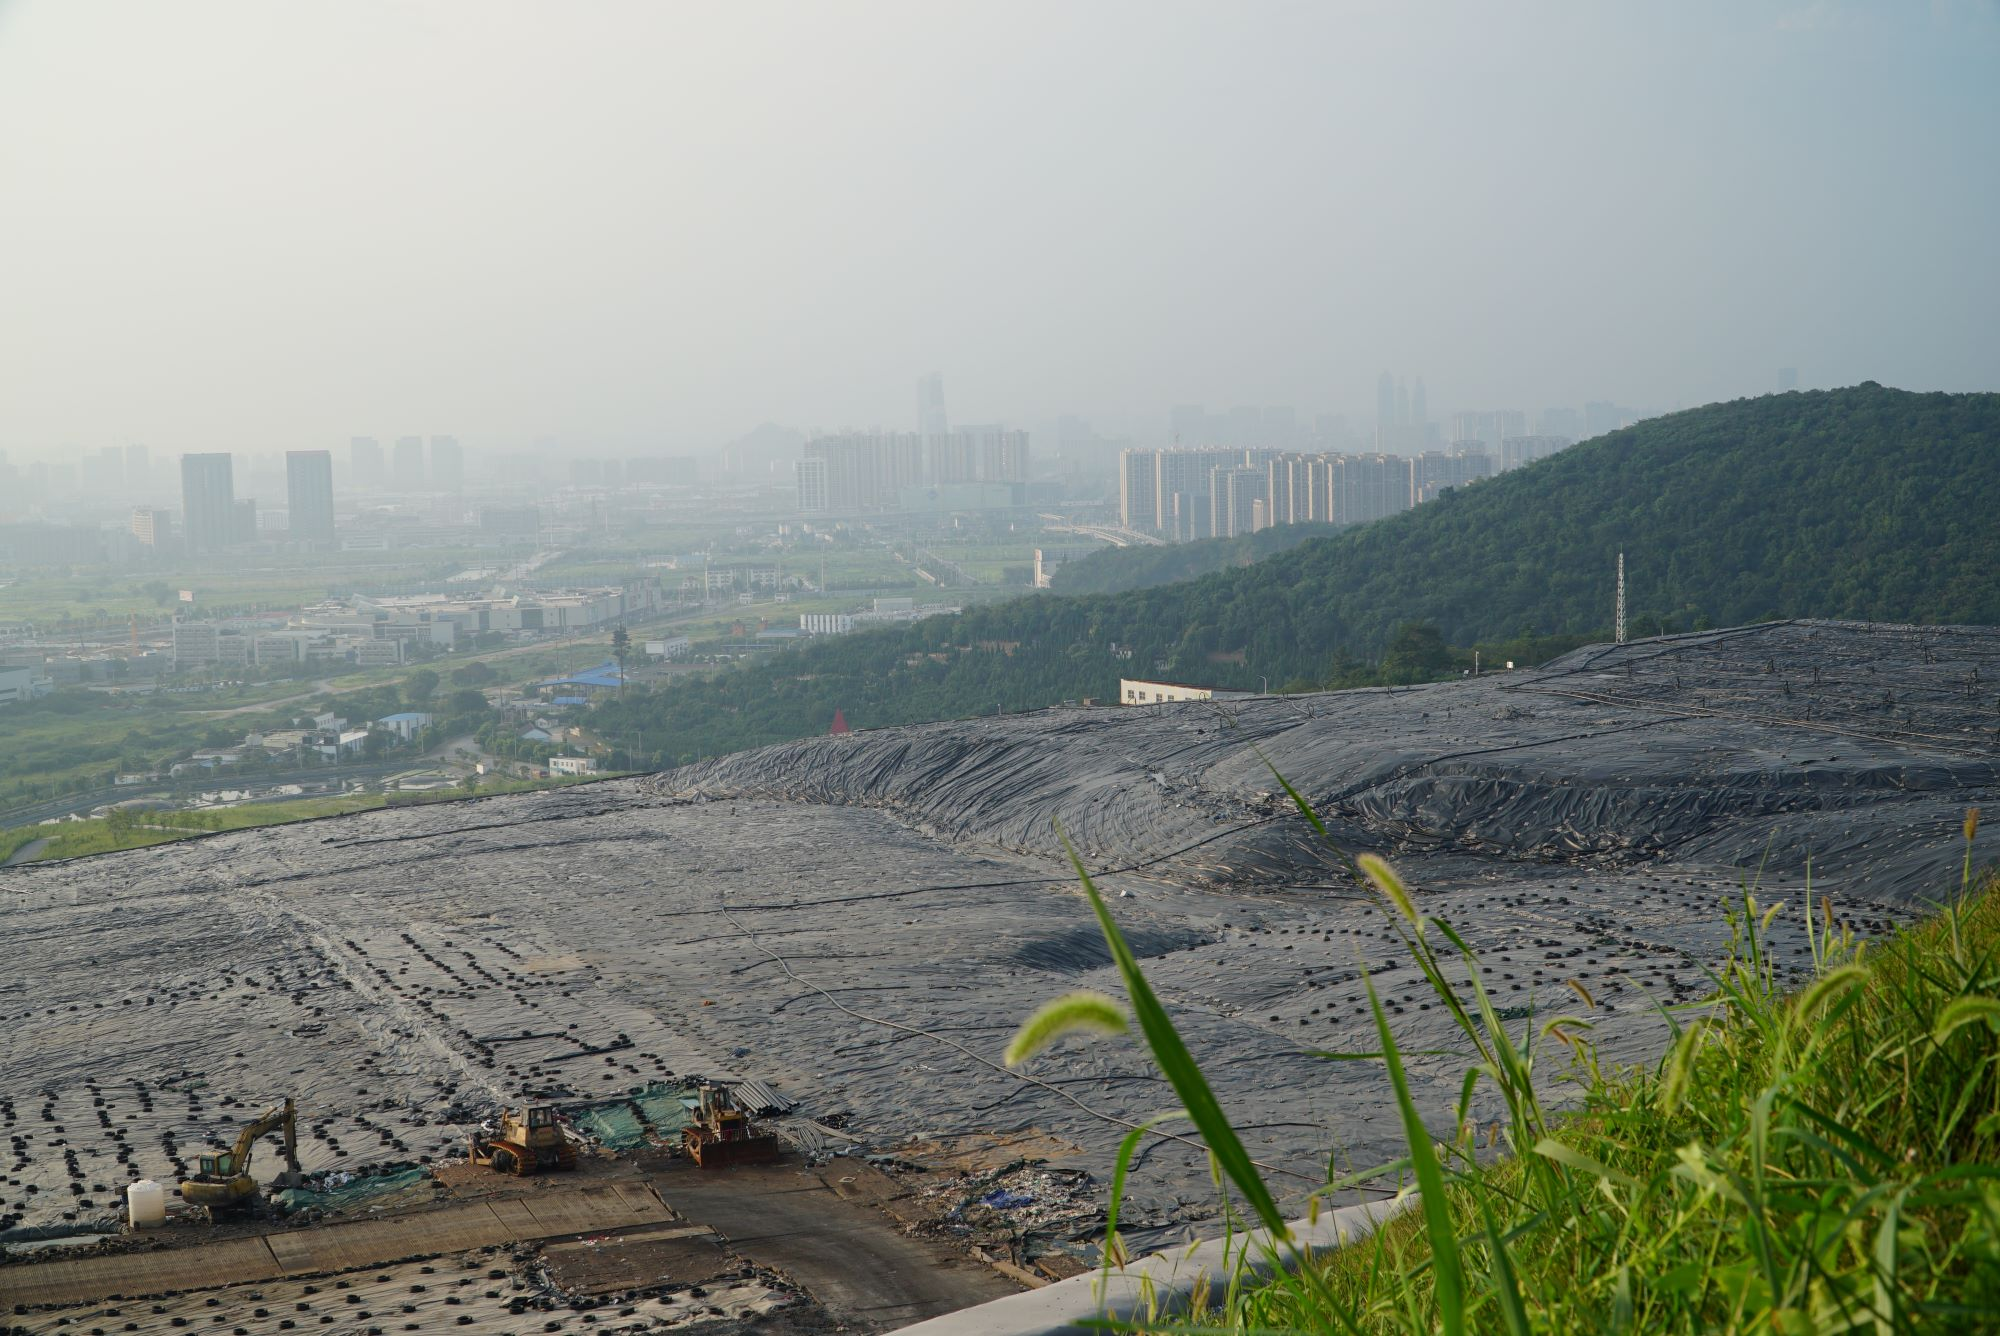 Landfill Facility in Suzhou, one of the Project Demonstration Municipalities